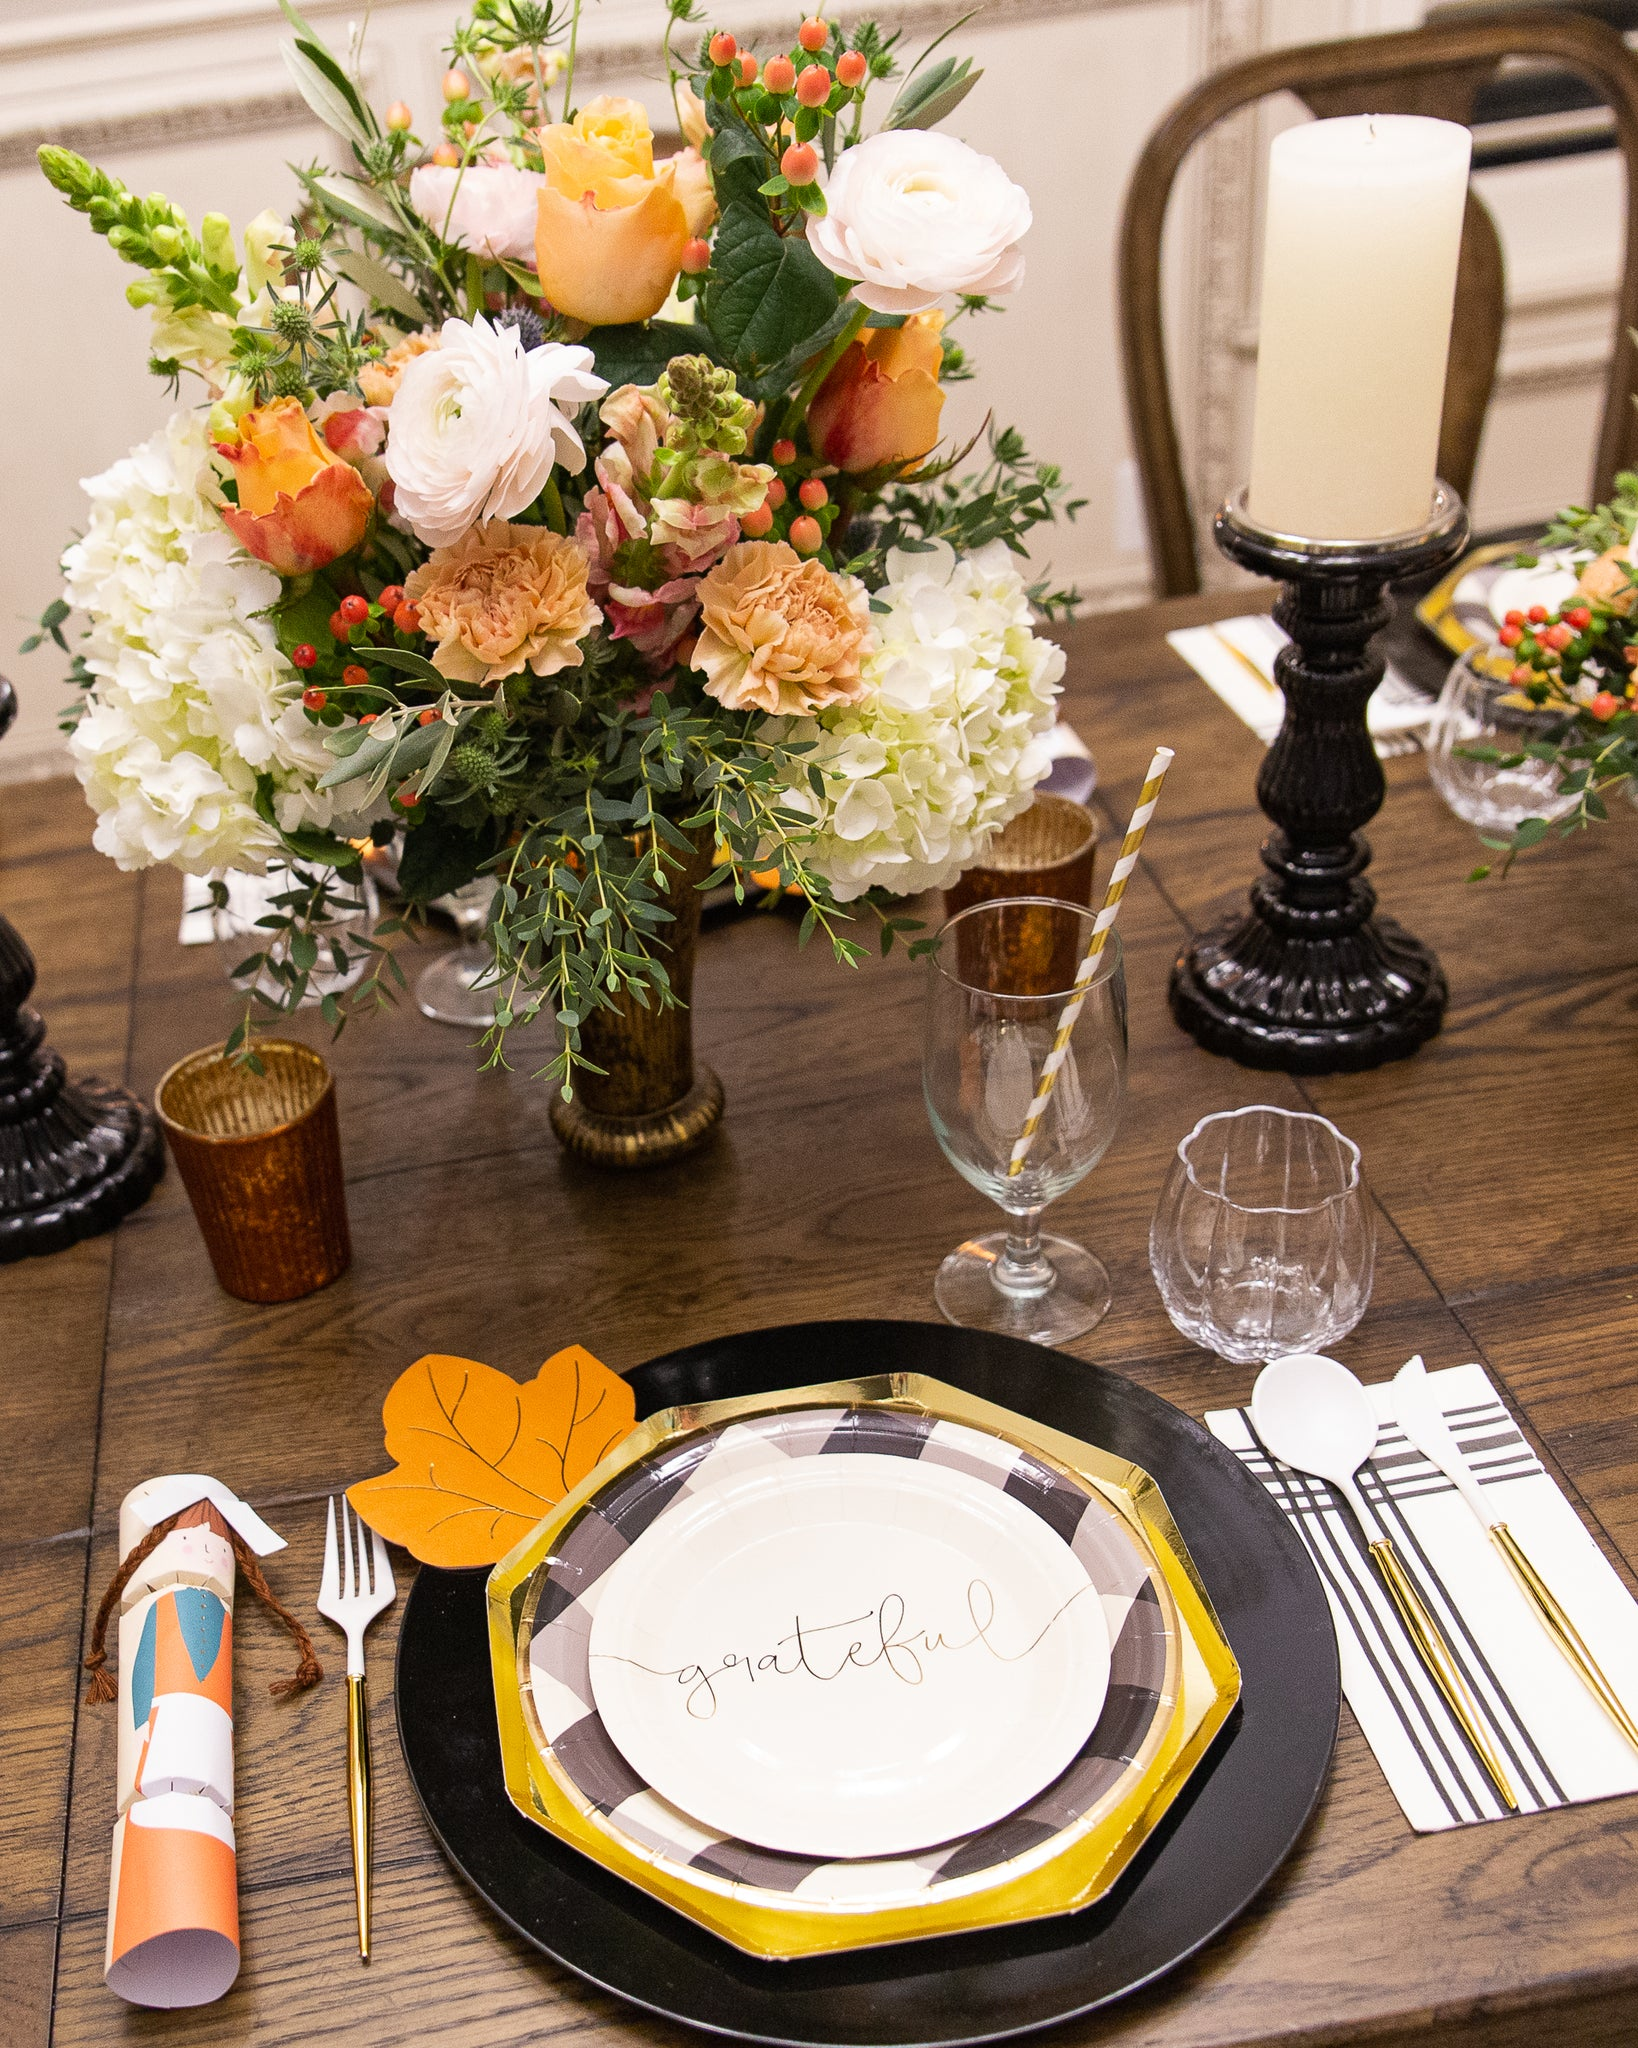 Friendsgiving table setting and flowers